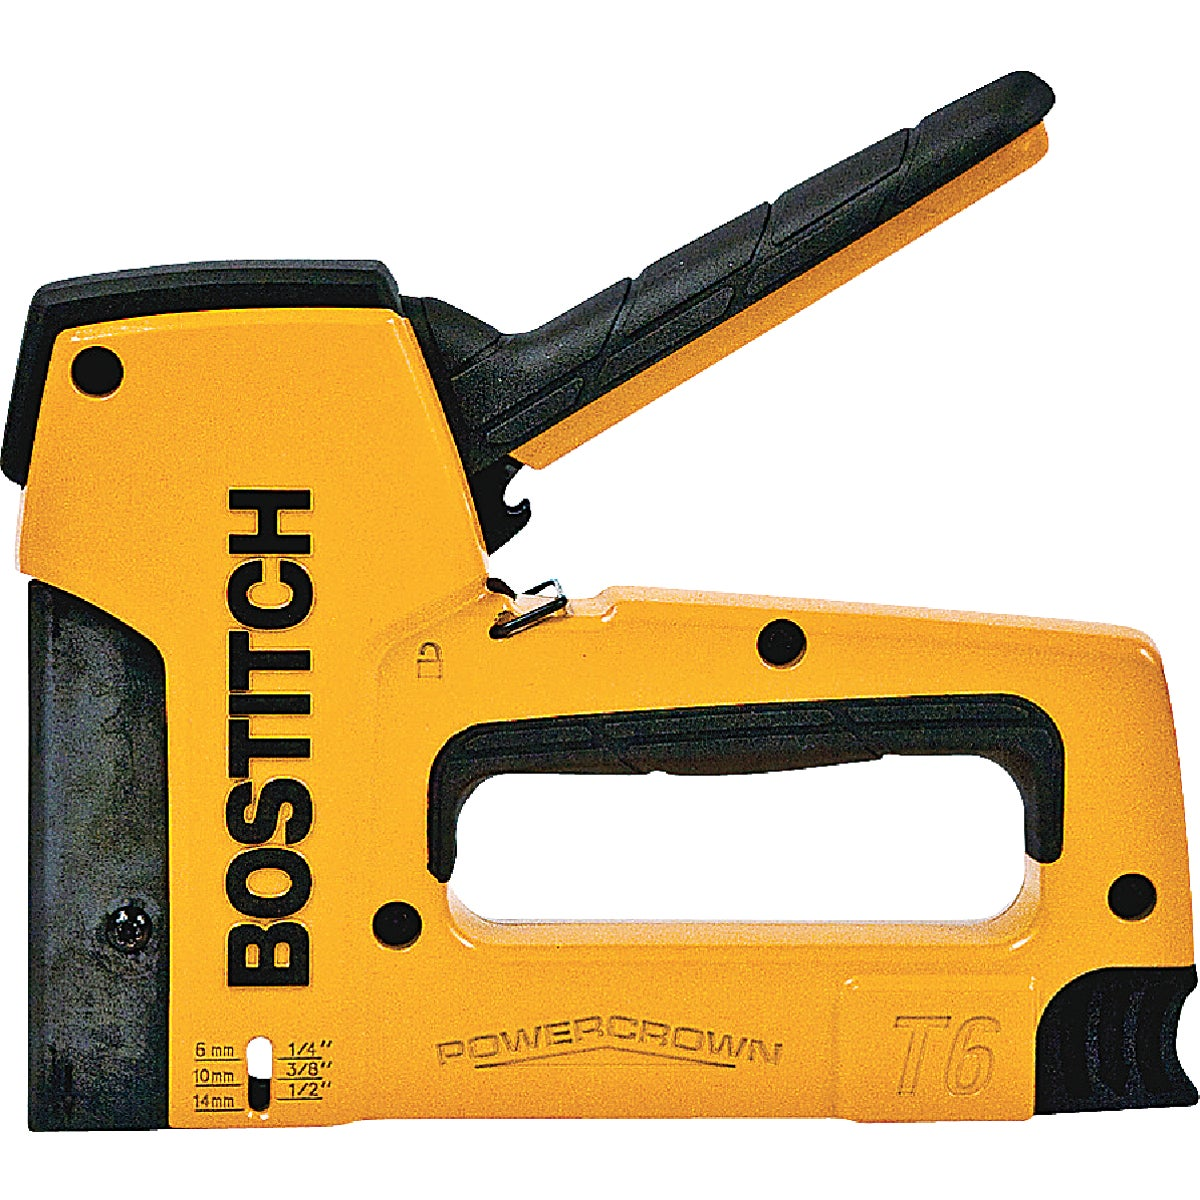 POWERCROWN HD STAPLE GUN - T6-8 by Stanley Bostitch